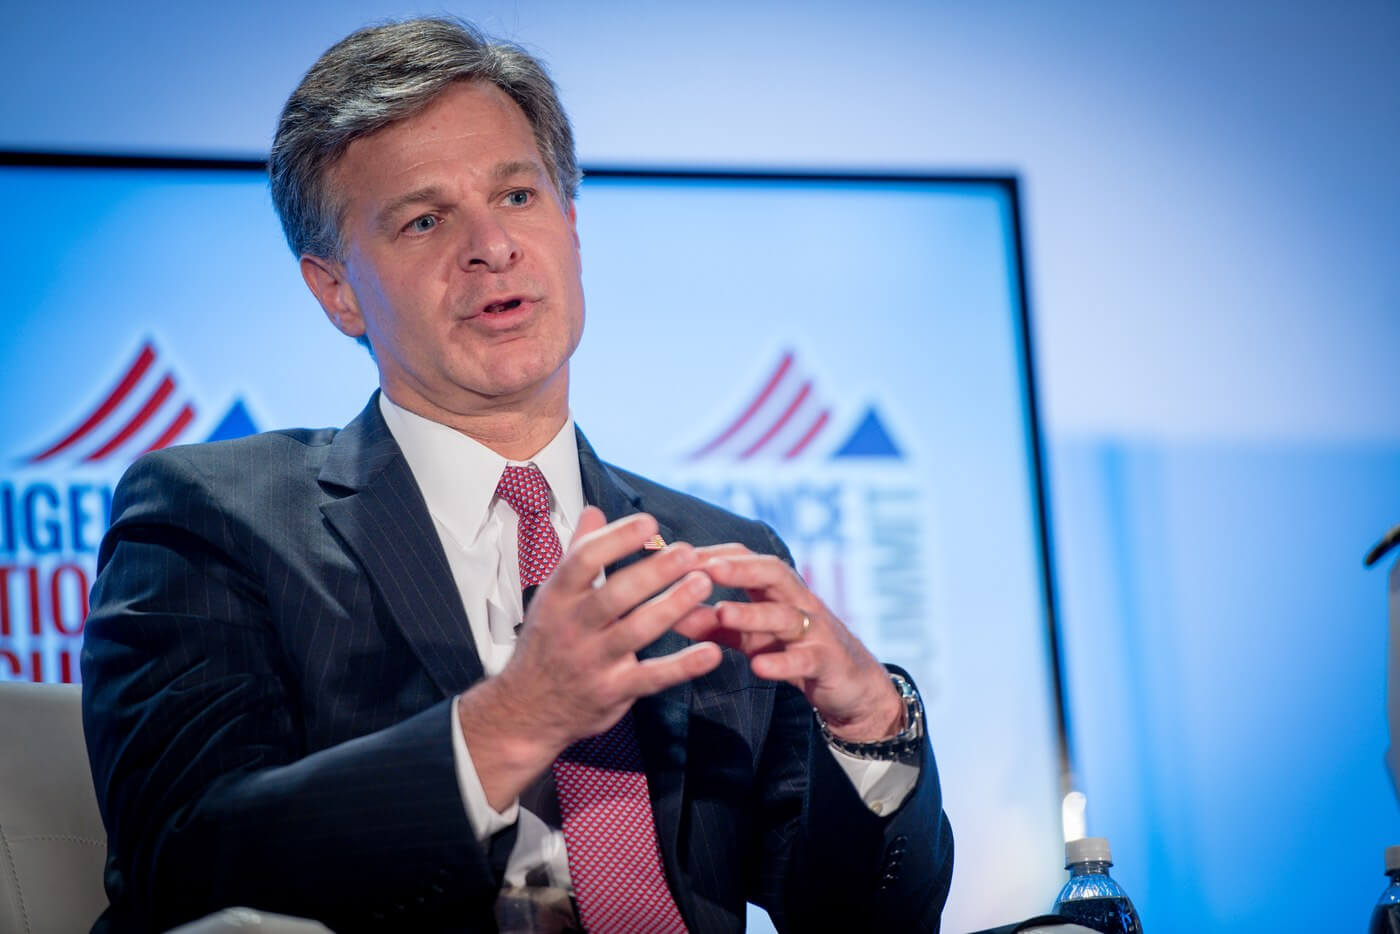 FBI failed to access data from almost 7,000 devices; director calls encryption a huge problem